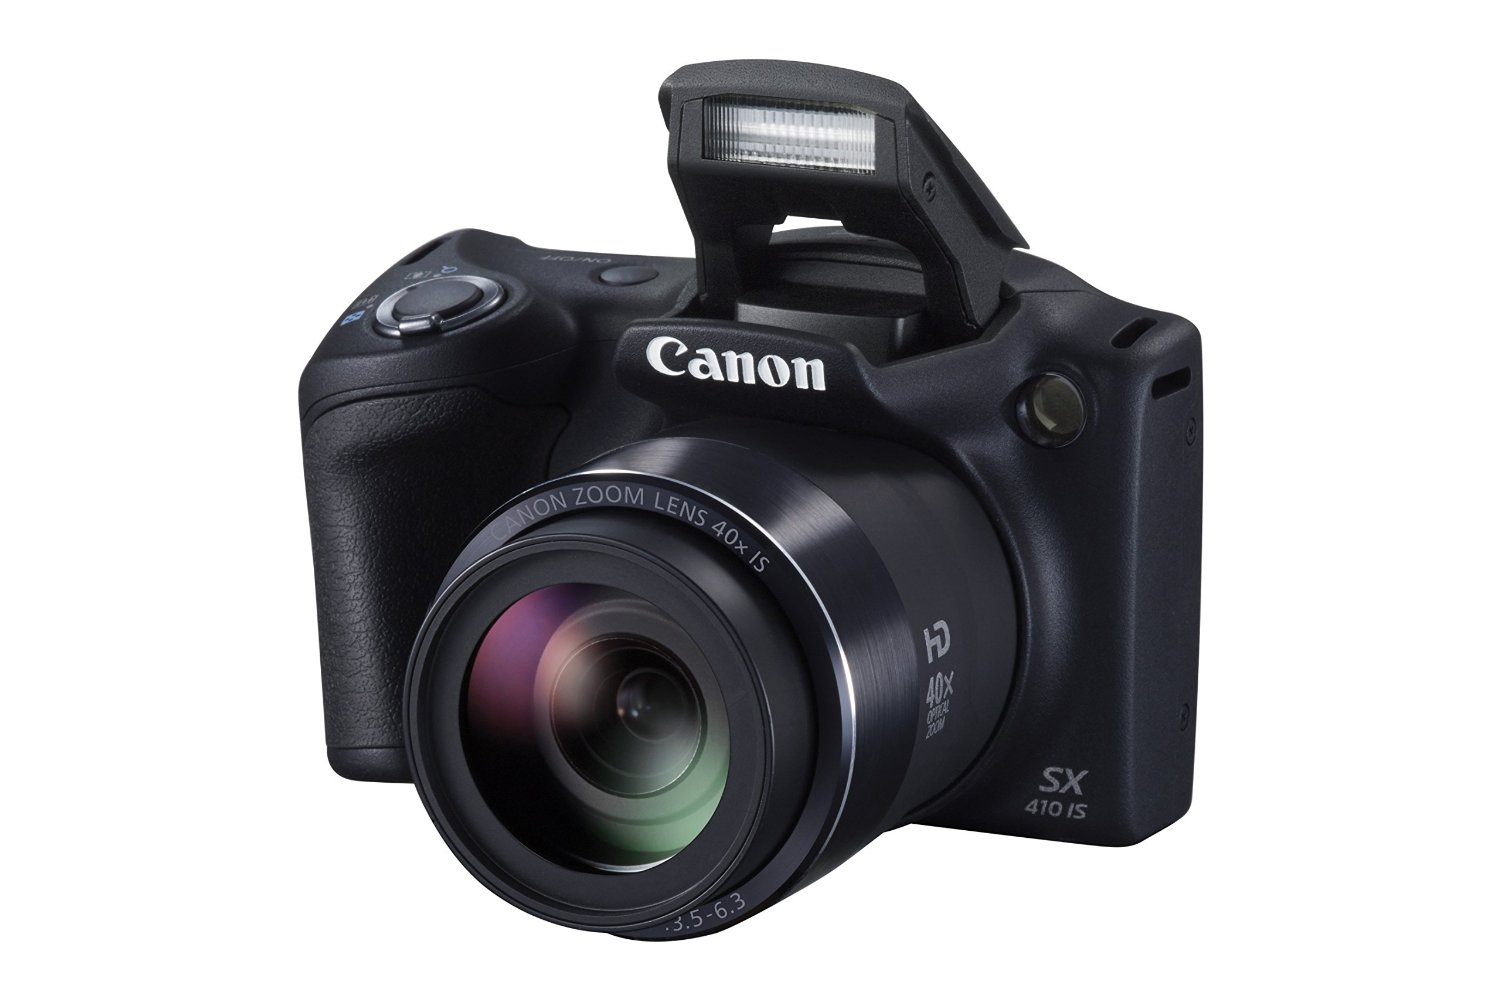 7. Canon PowerShot SX410 IS